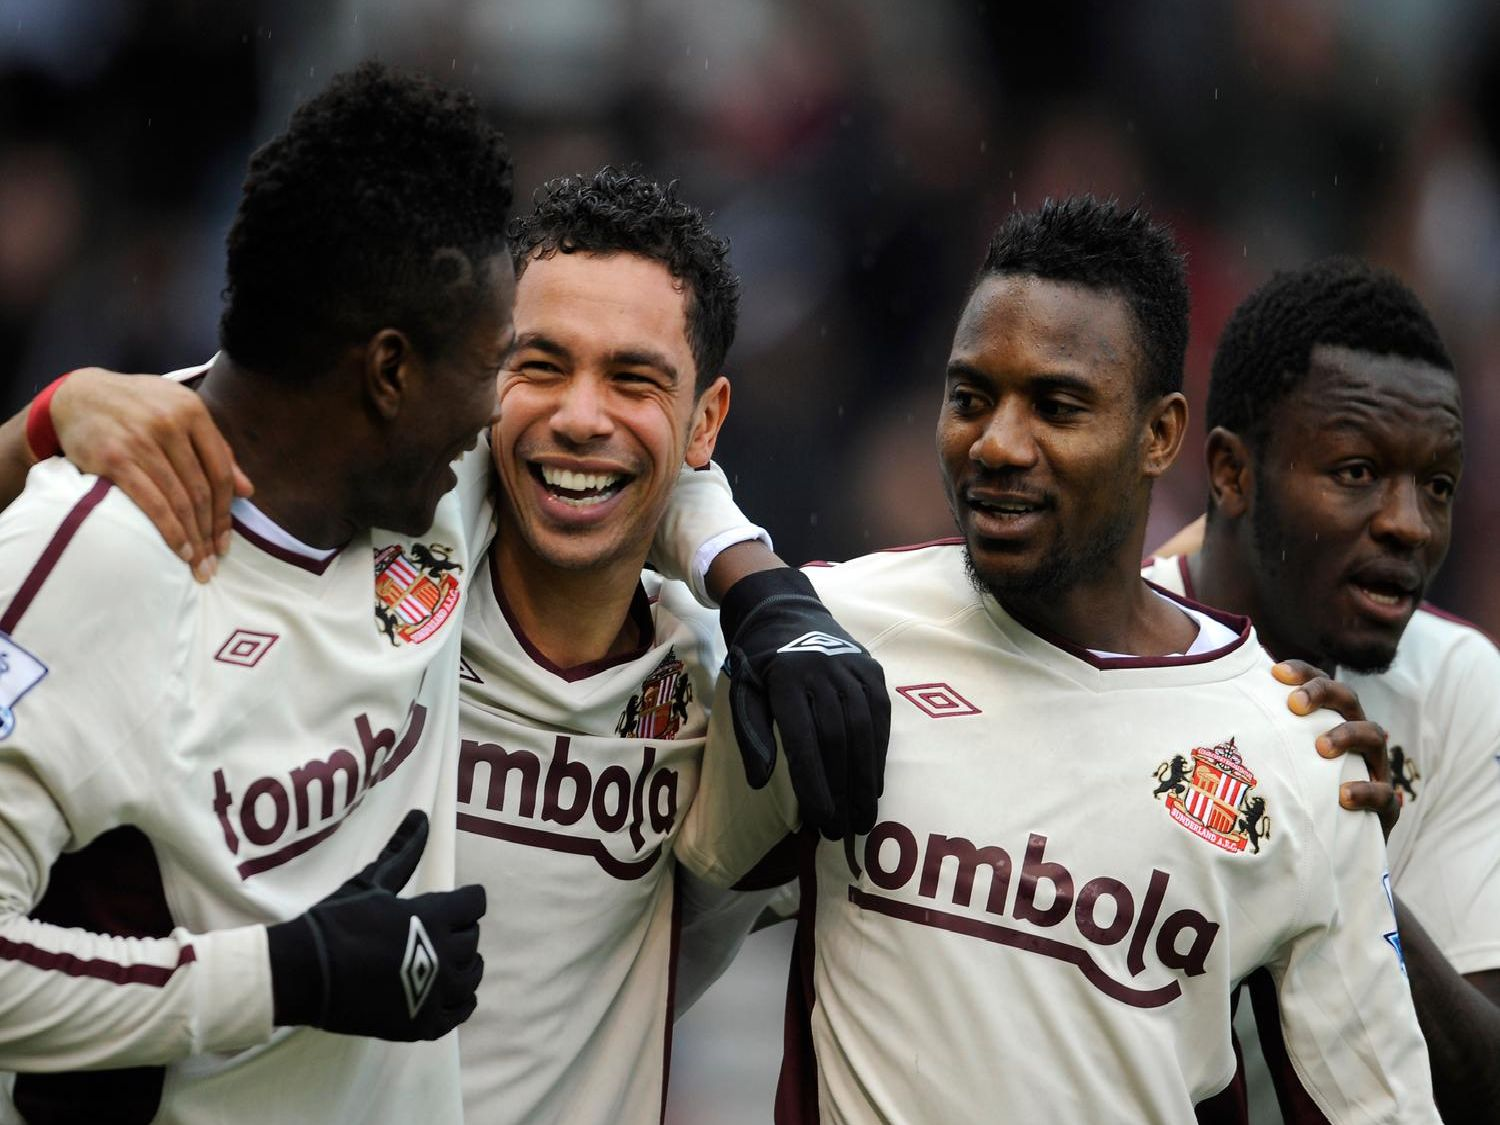 STOKE ON TRENT, ENGLAND - FEBRUARY 05:  Kieran Richardson of Sunderland celebrates scoring to make it 1-0 with team mates Asamoah Gyan and Stephane Sessegnon during the Barclays Premier League match between Stoke City and Sunderland at the Britannia Stadium on February 5, 2011 in Stoke on Trent, England.  (Photo by Michael Regan/Getty Images)